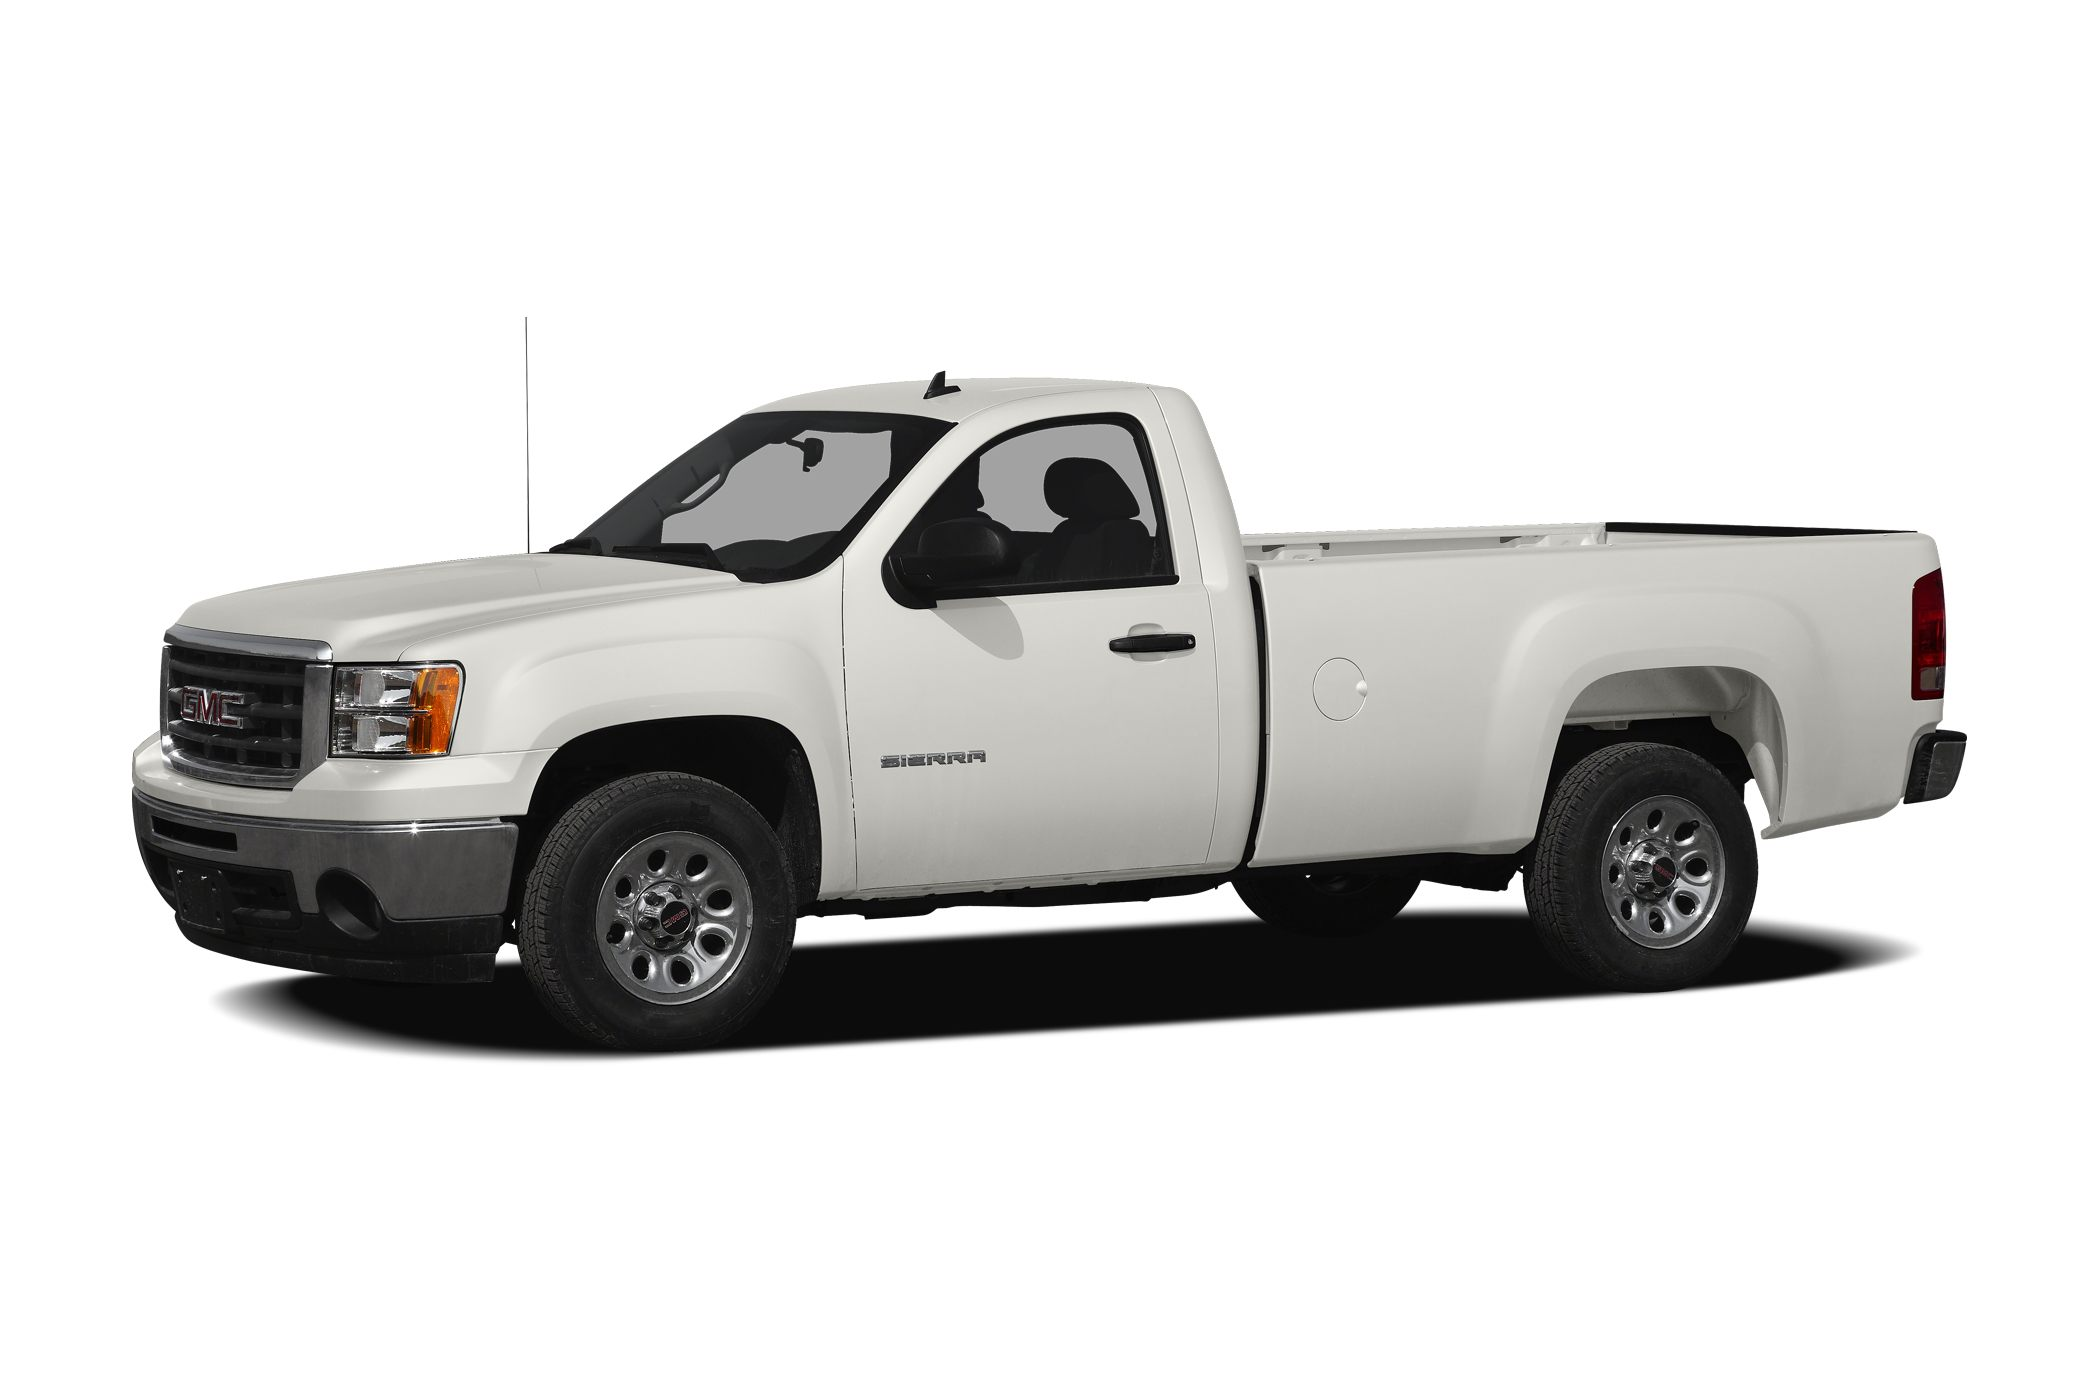 2012 GMC Sierra 1500 SLE Crew Cab Pickup for sale in Tucson for $29,995 with 48,689 miles